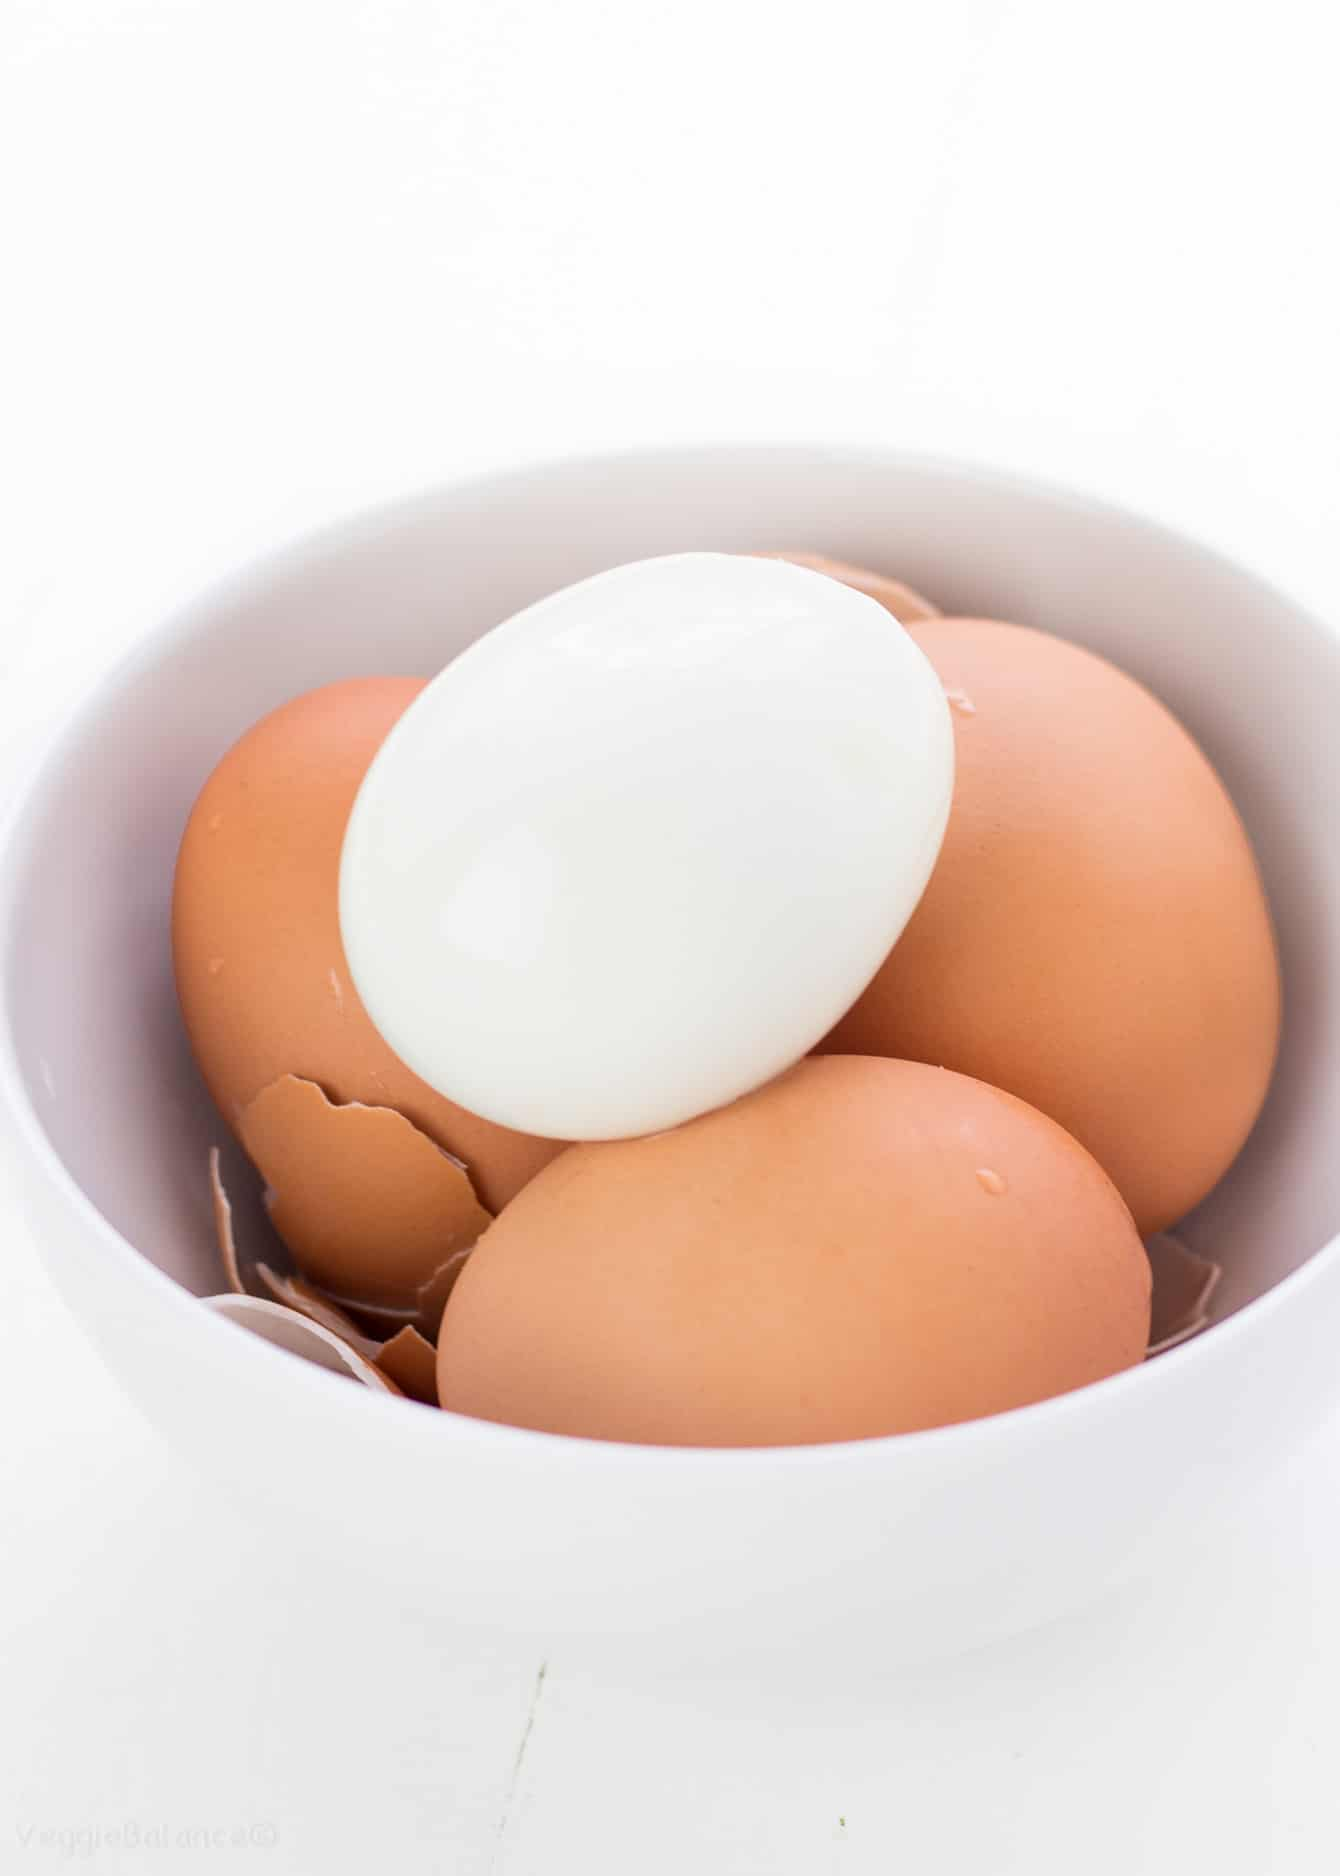 How to Make the Perfect Hard Boiled Eggs